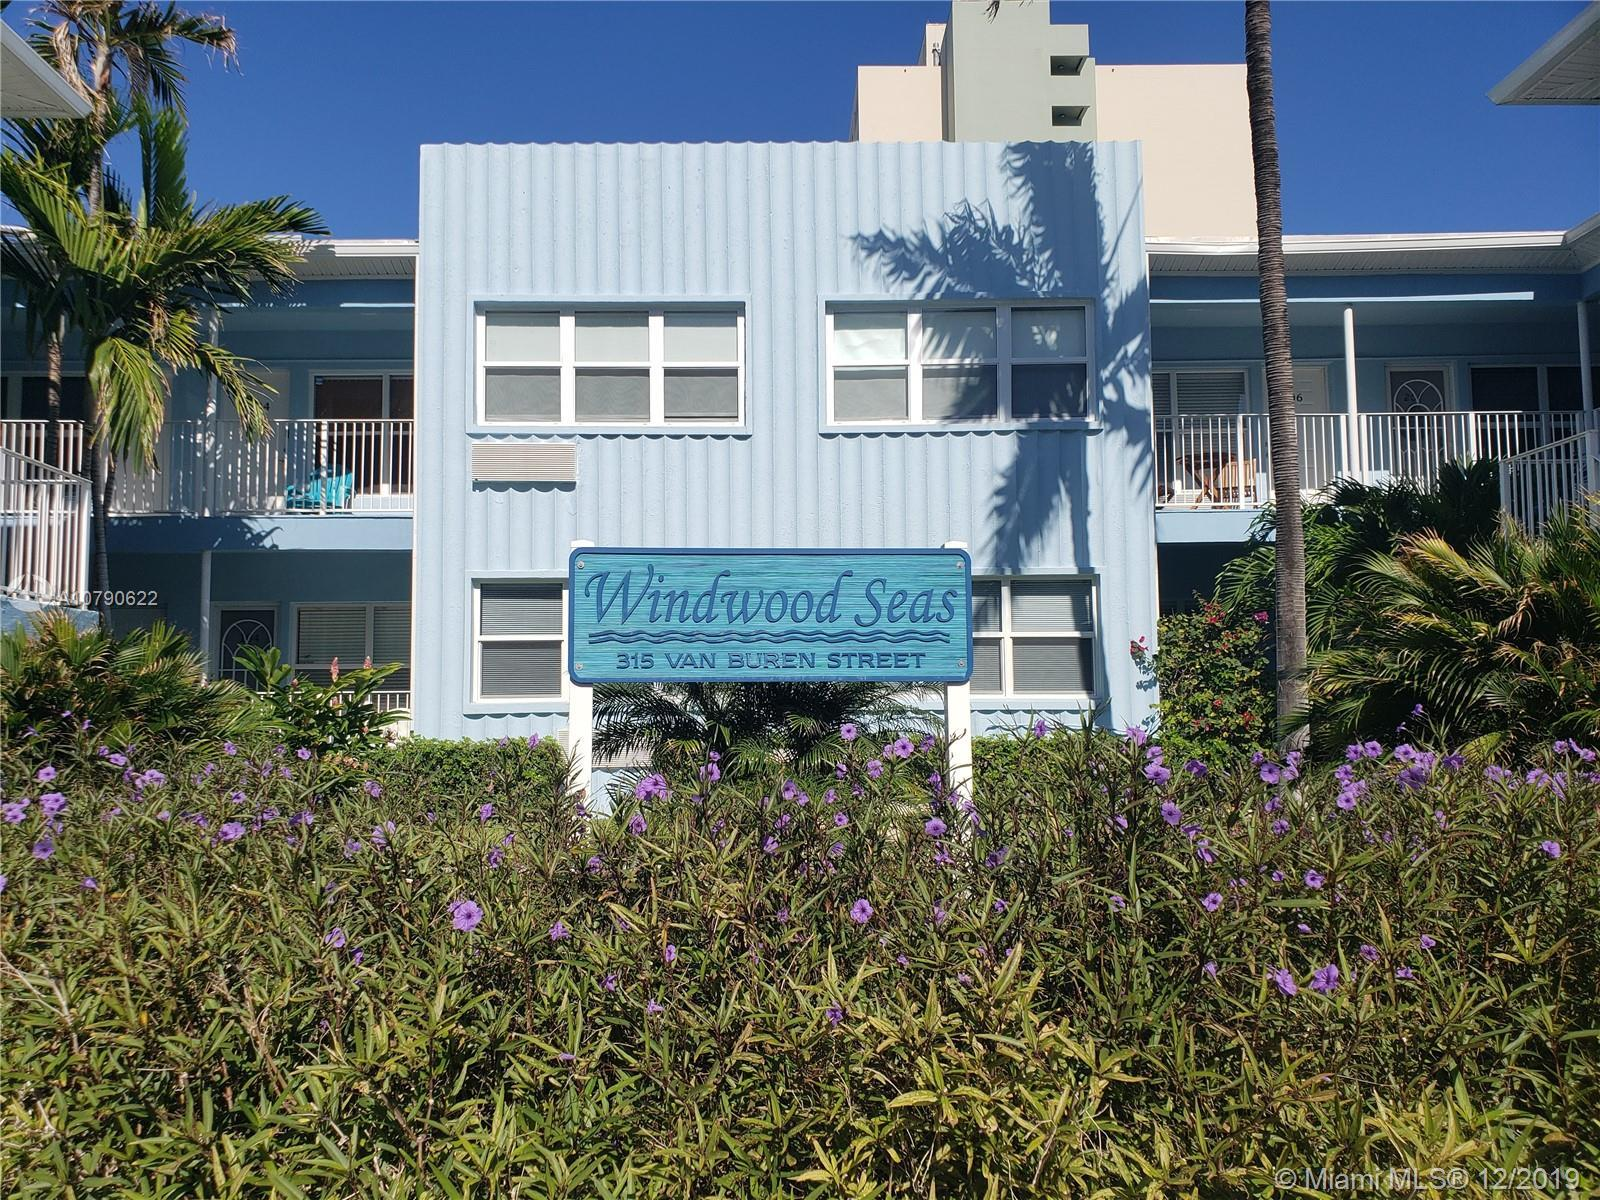 Great condo steps away from the beach. Has been fully remolded and updated with granite tops counter